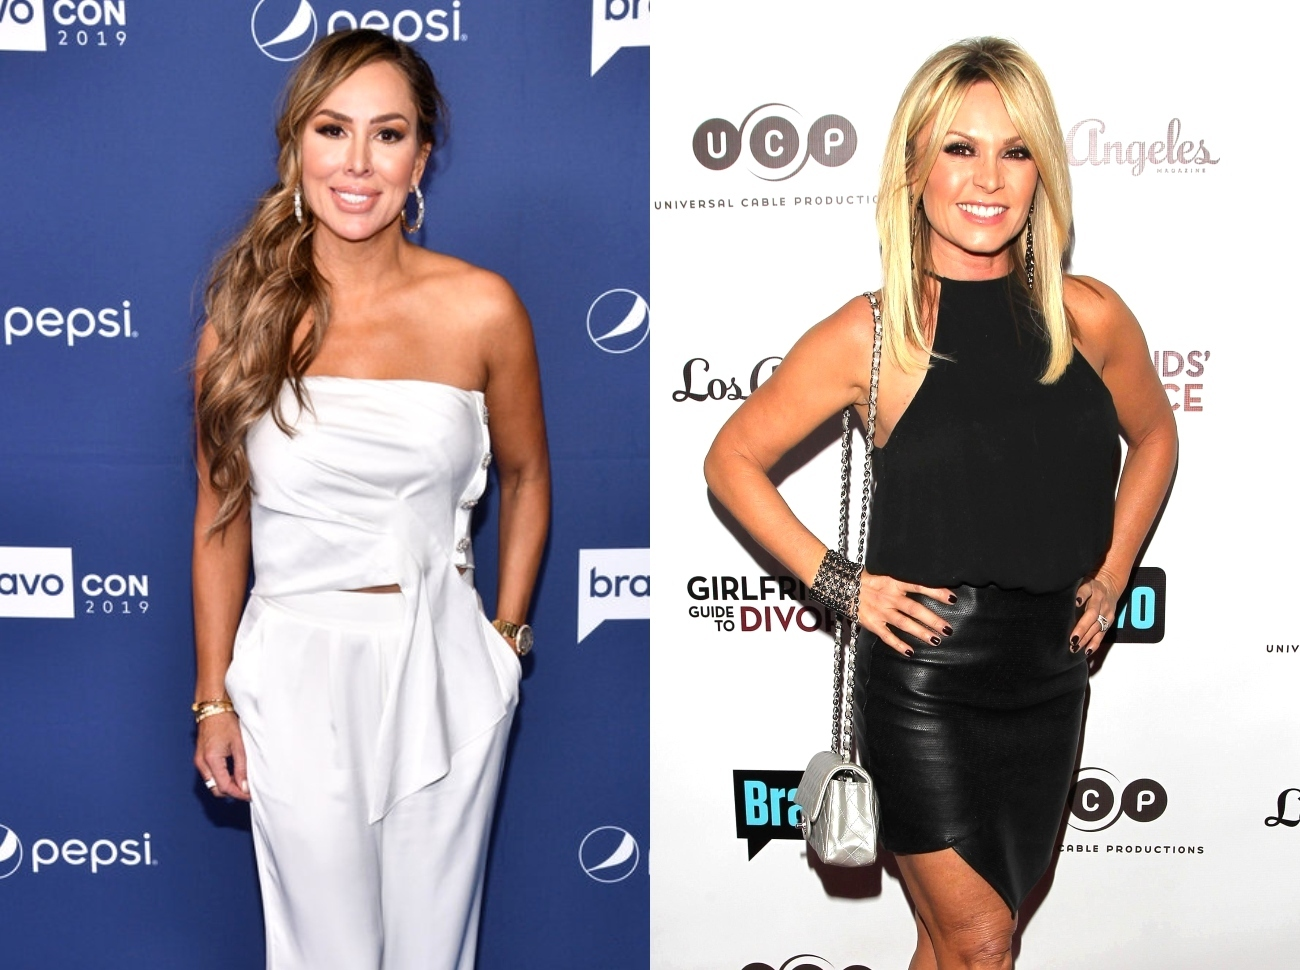 RHOC's Tamra Judge Threatens to Sue Kelly Dodd Over Comments About CUT Fitness and Slams Her as a Bully, Plus Kelly Sets the Record Straight About Her Involvement With Jim Bellino's Lawsuit